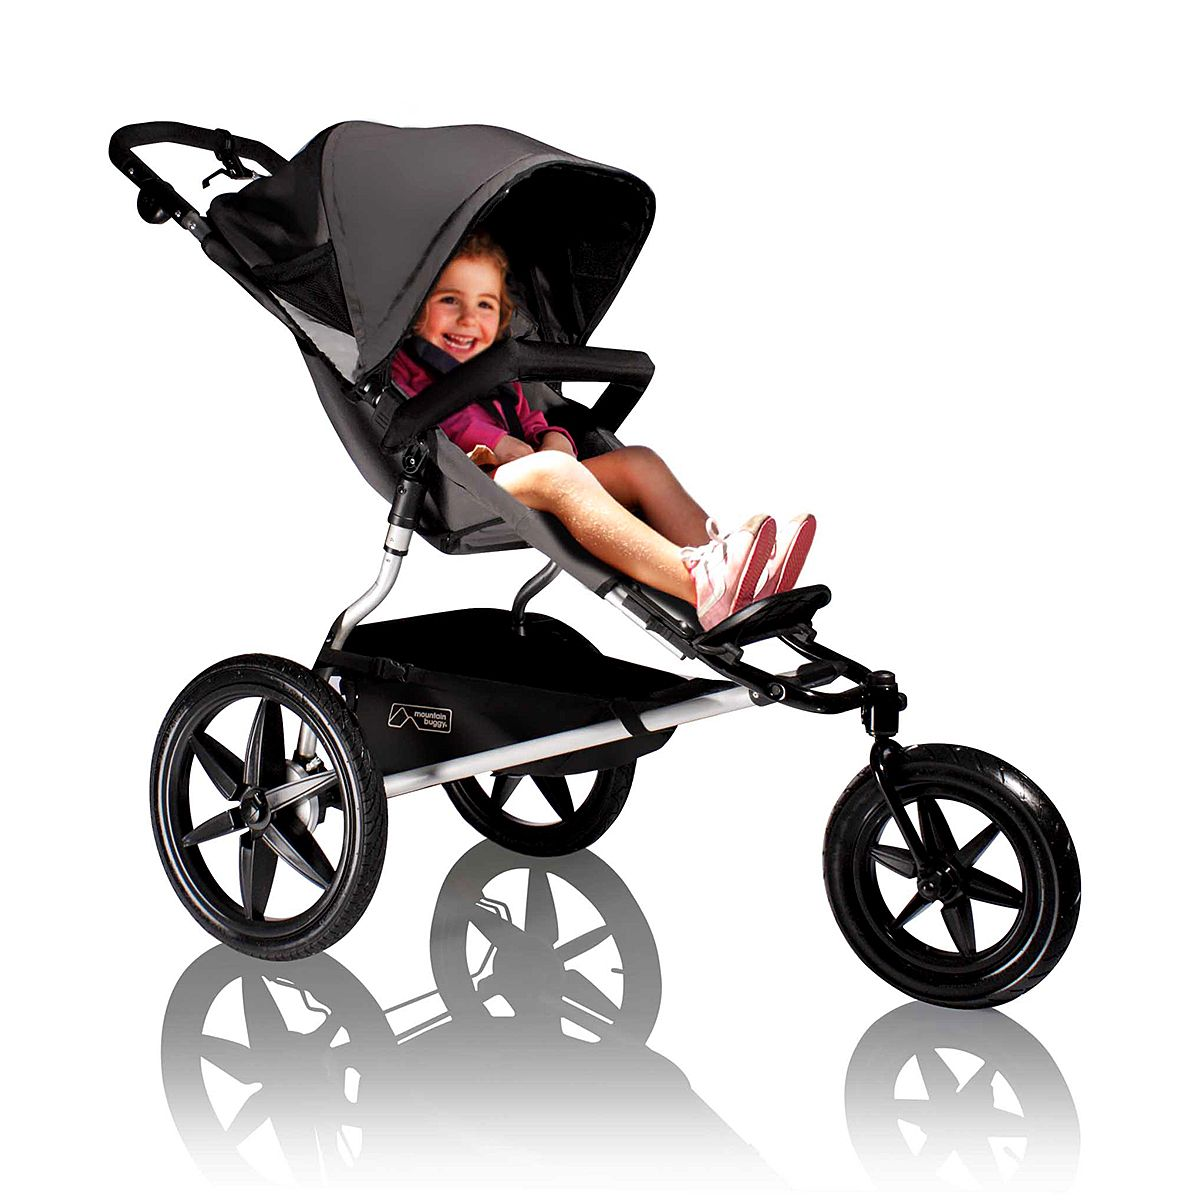 Jeep Stroller Tires Jpeg Dodge and Jeep Cars Images